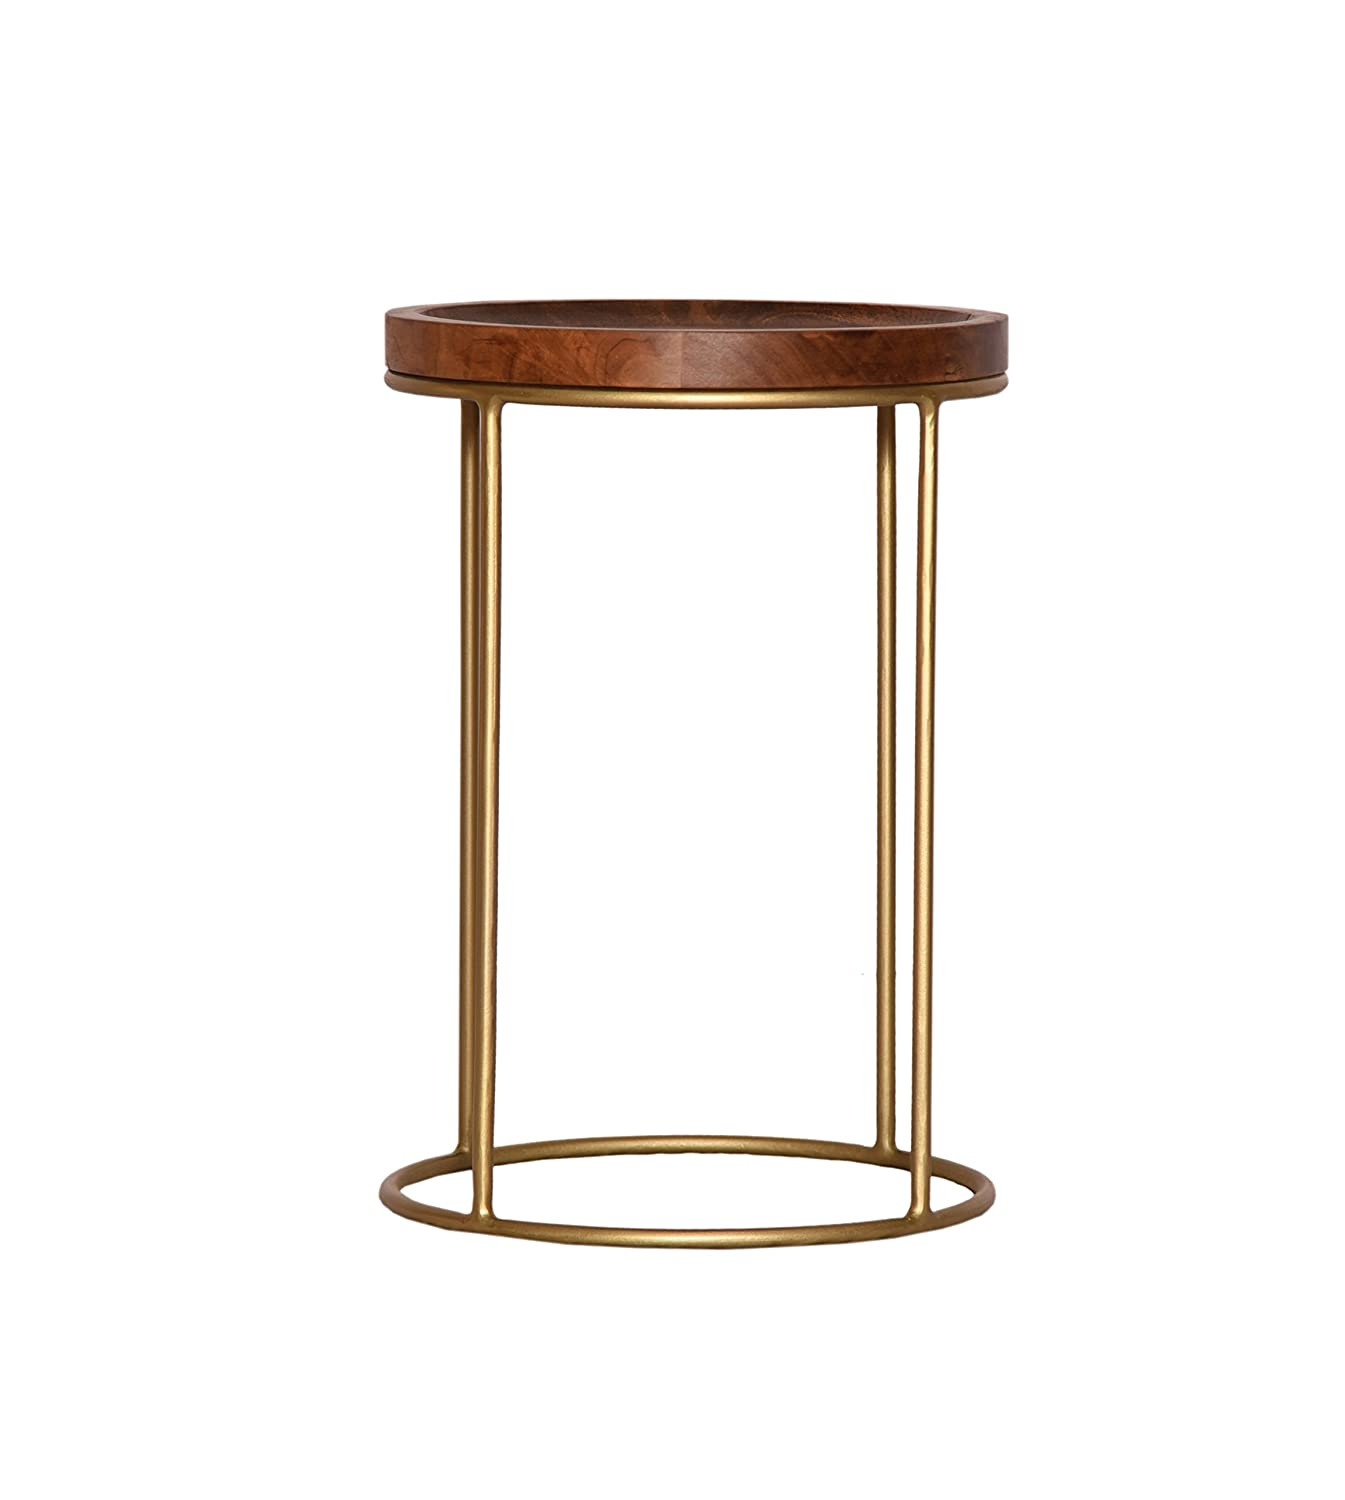 Delphyne Solid Acacia Wood Round Side Table (Brown/Brass, S:30x30x43 cm) ASPECT